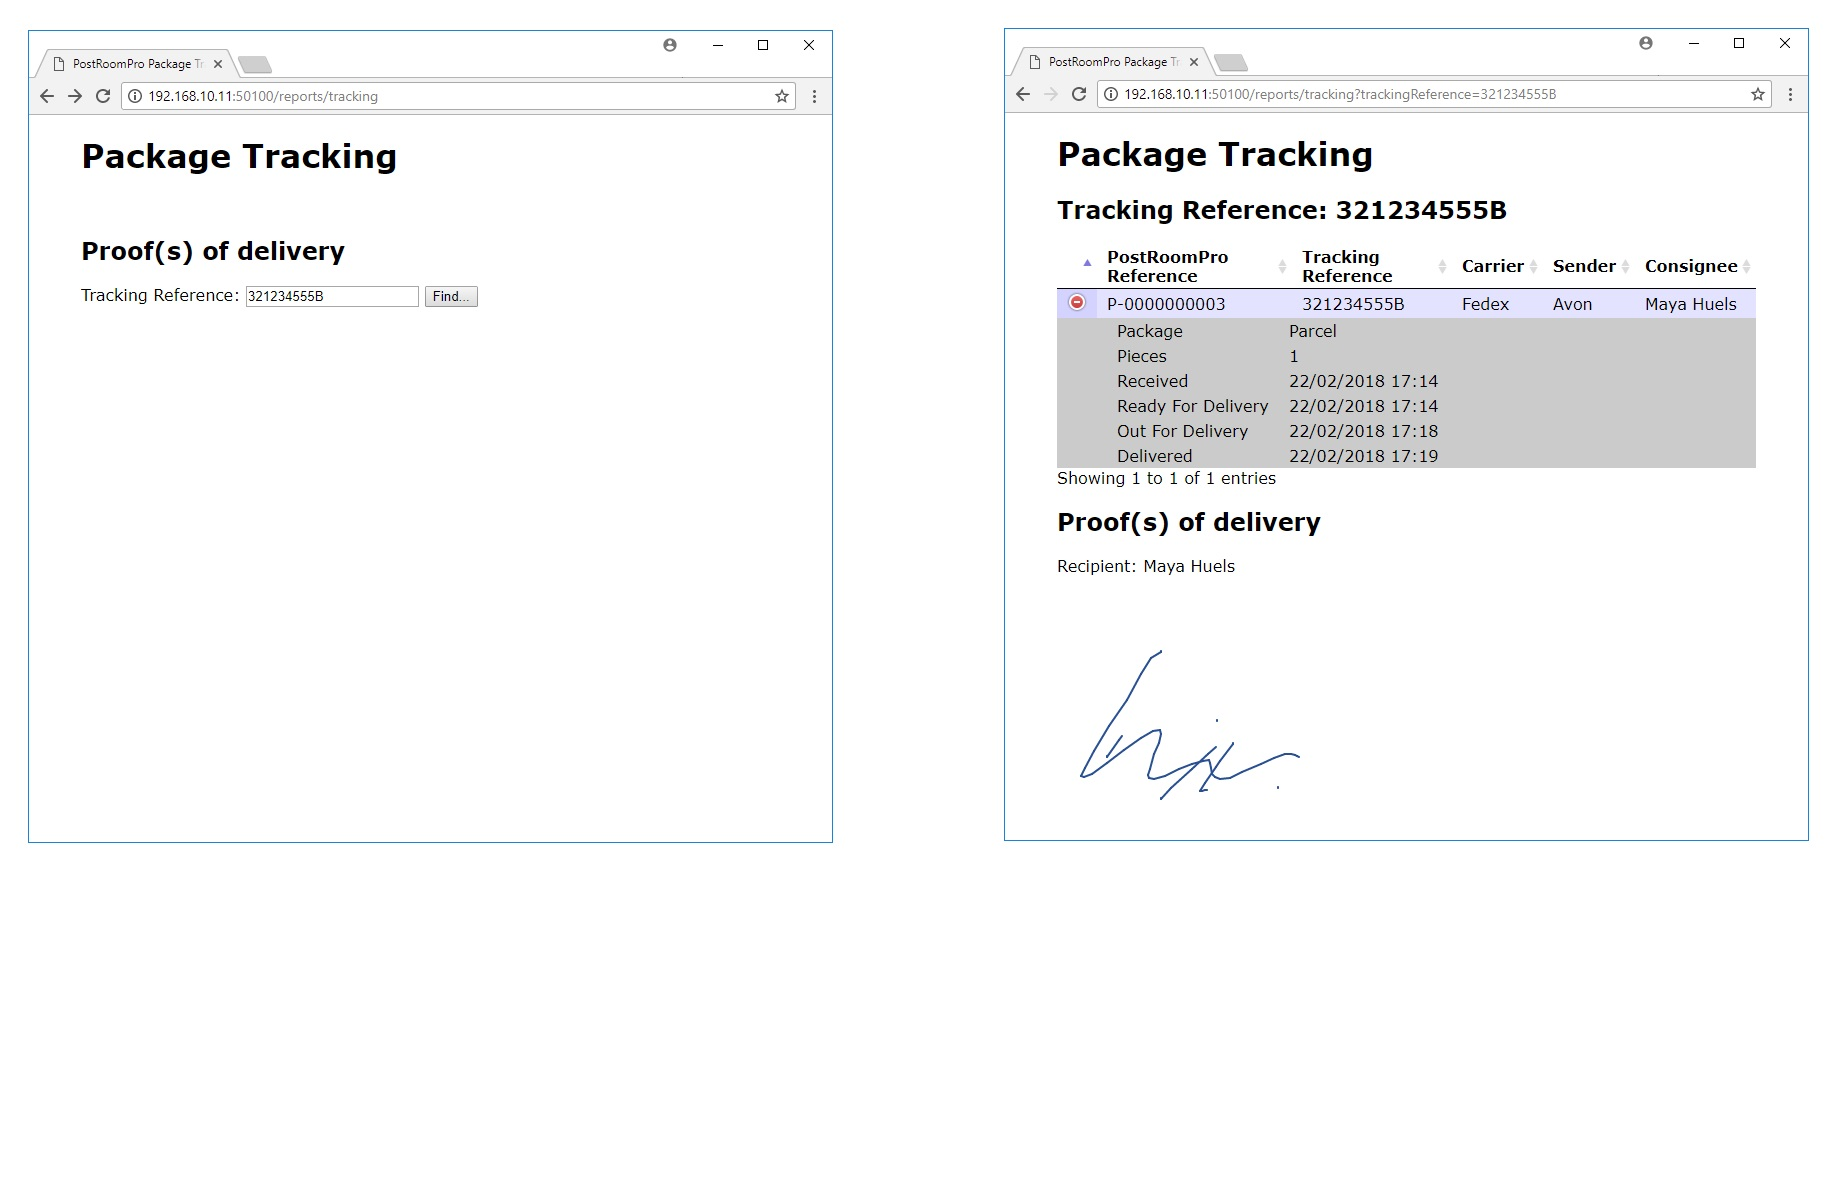 PostRoomPro mail room web based tracking